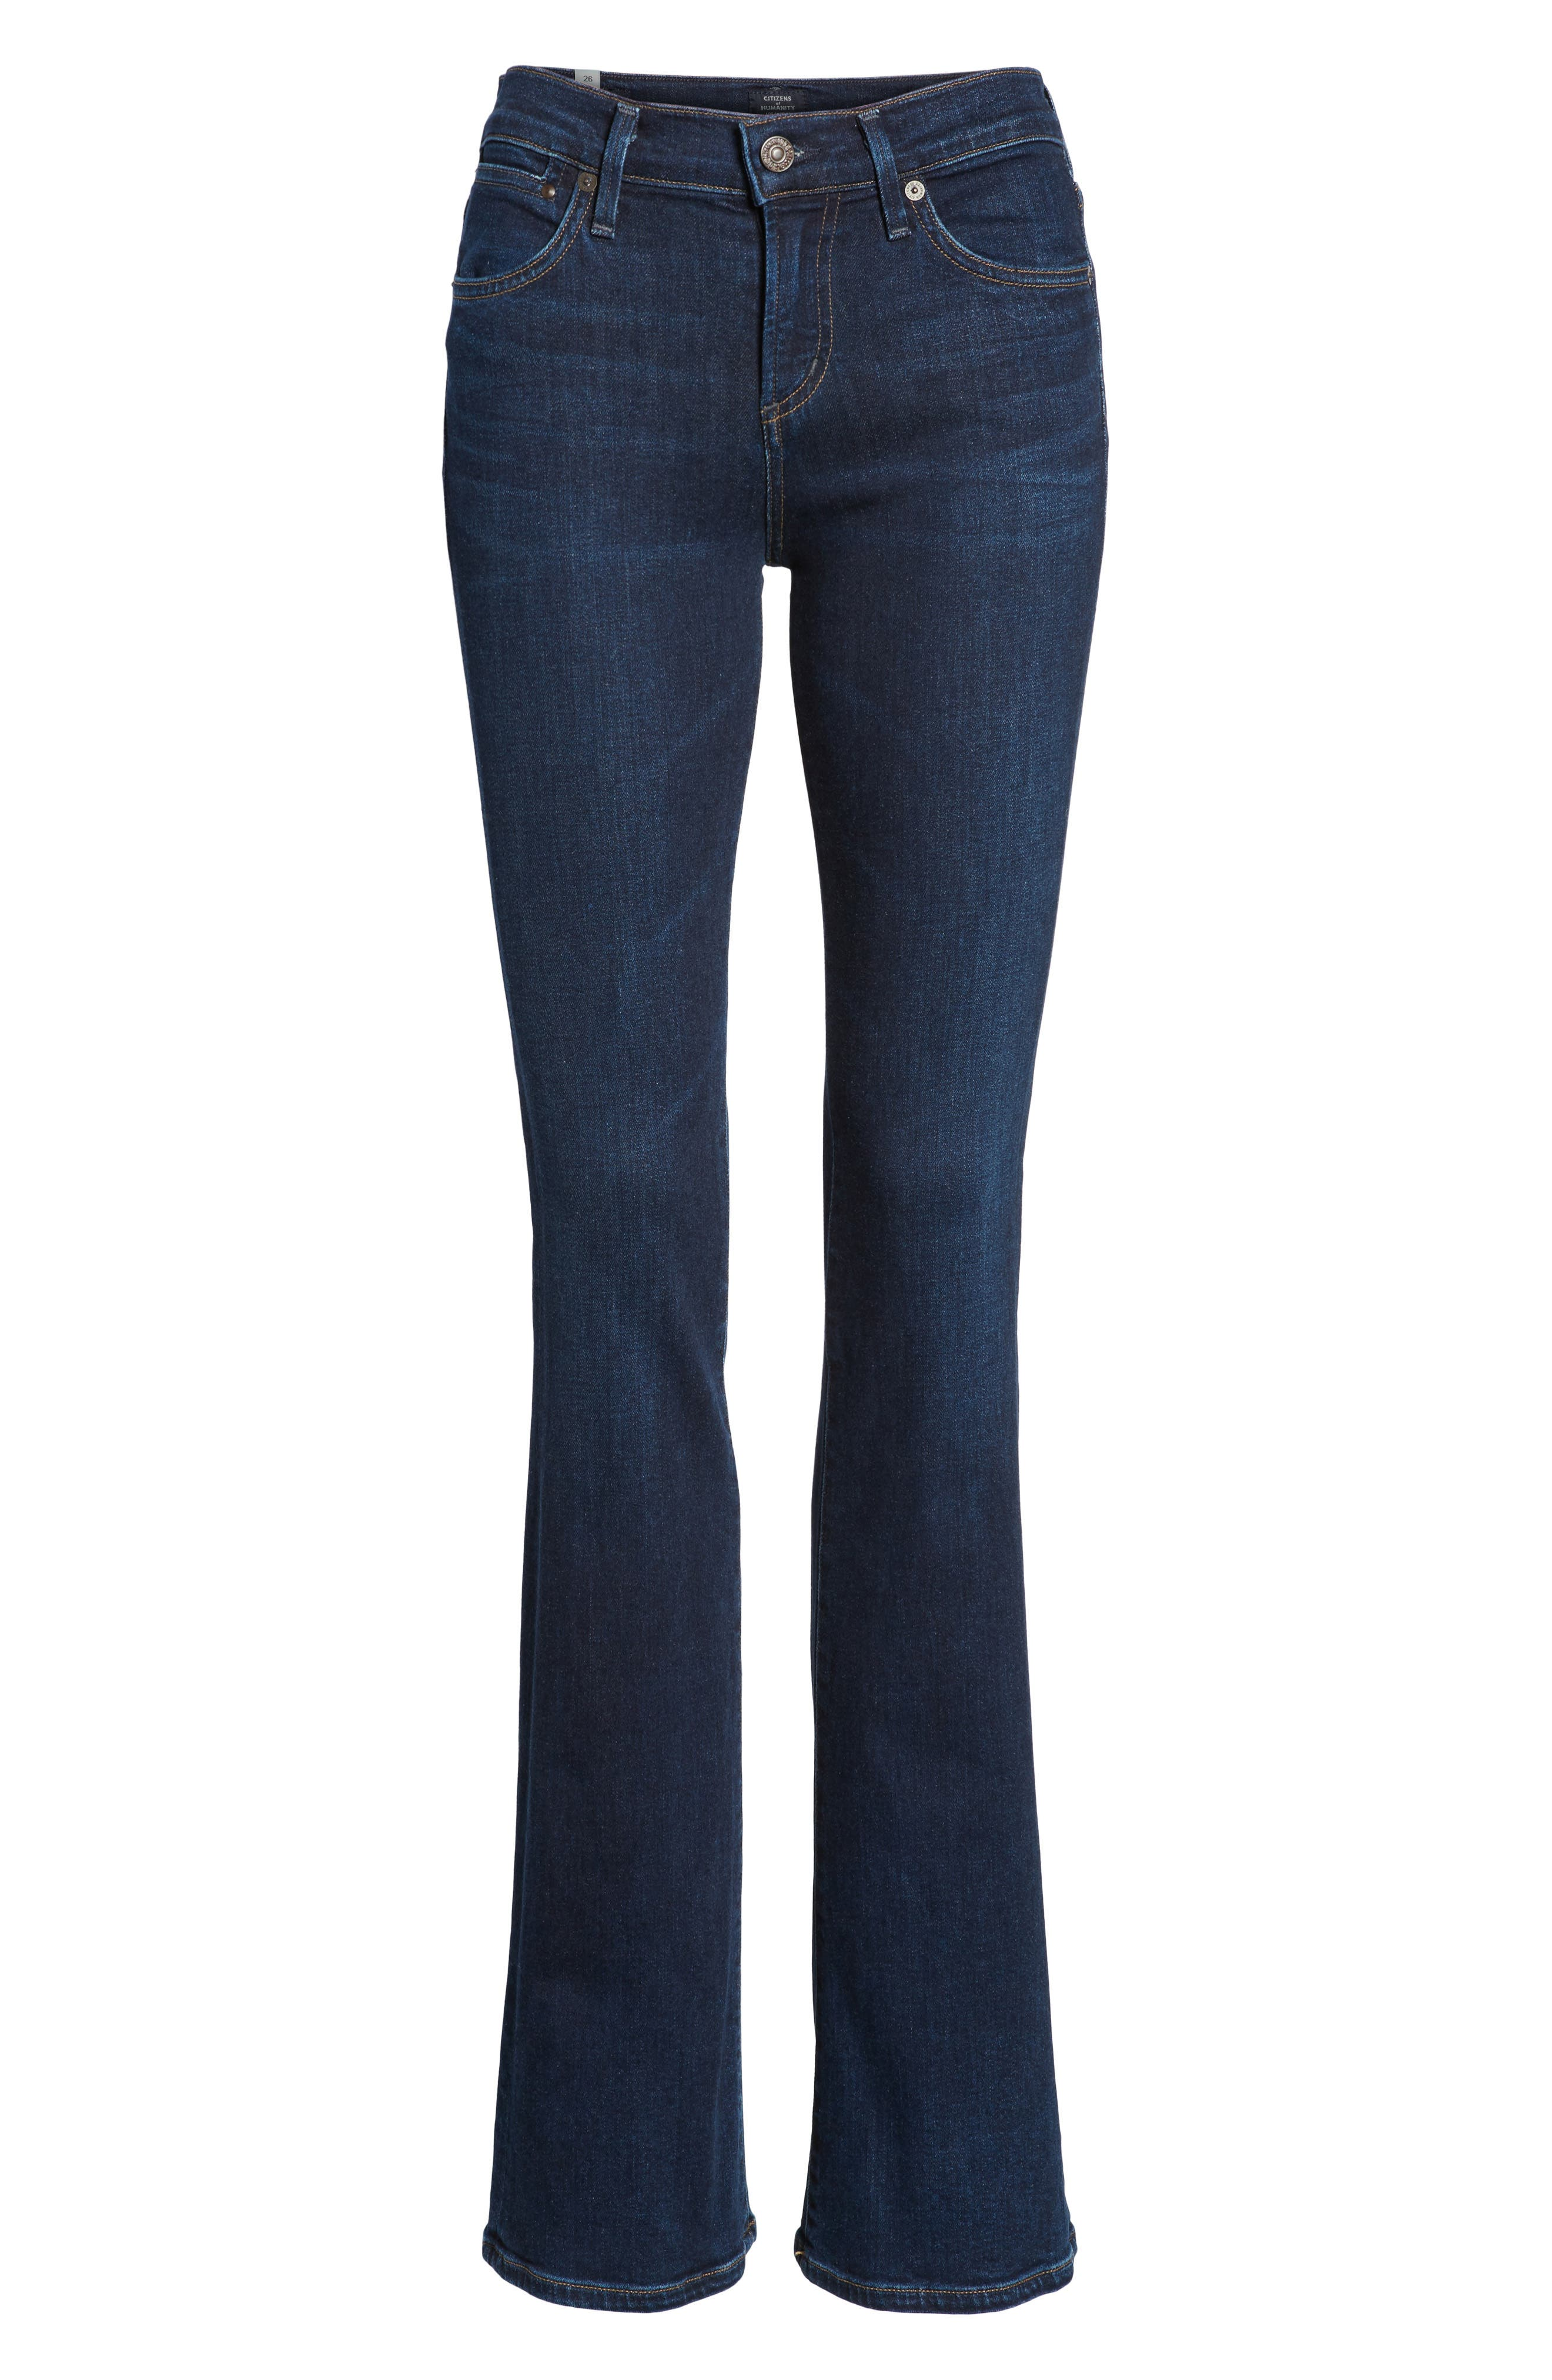 Emannuelle Bootcut Jeans,                             Alternate thumbnail 7, color,                             Galaxy